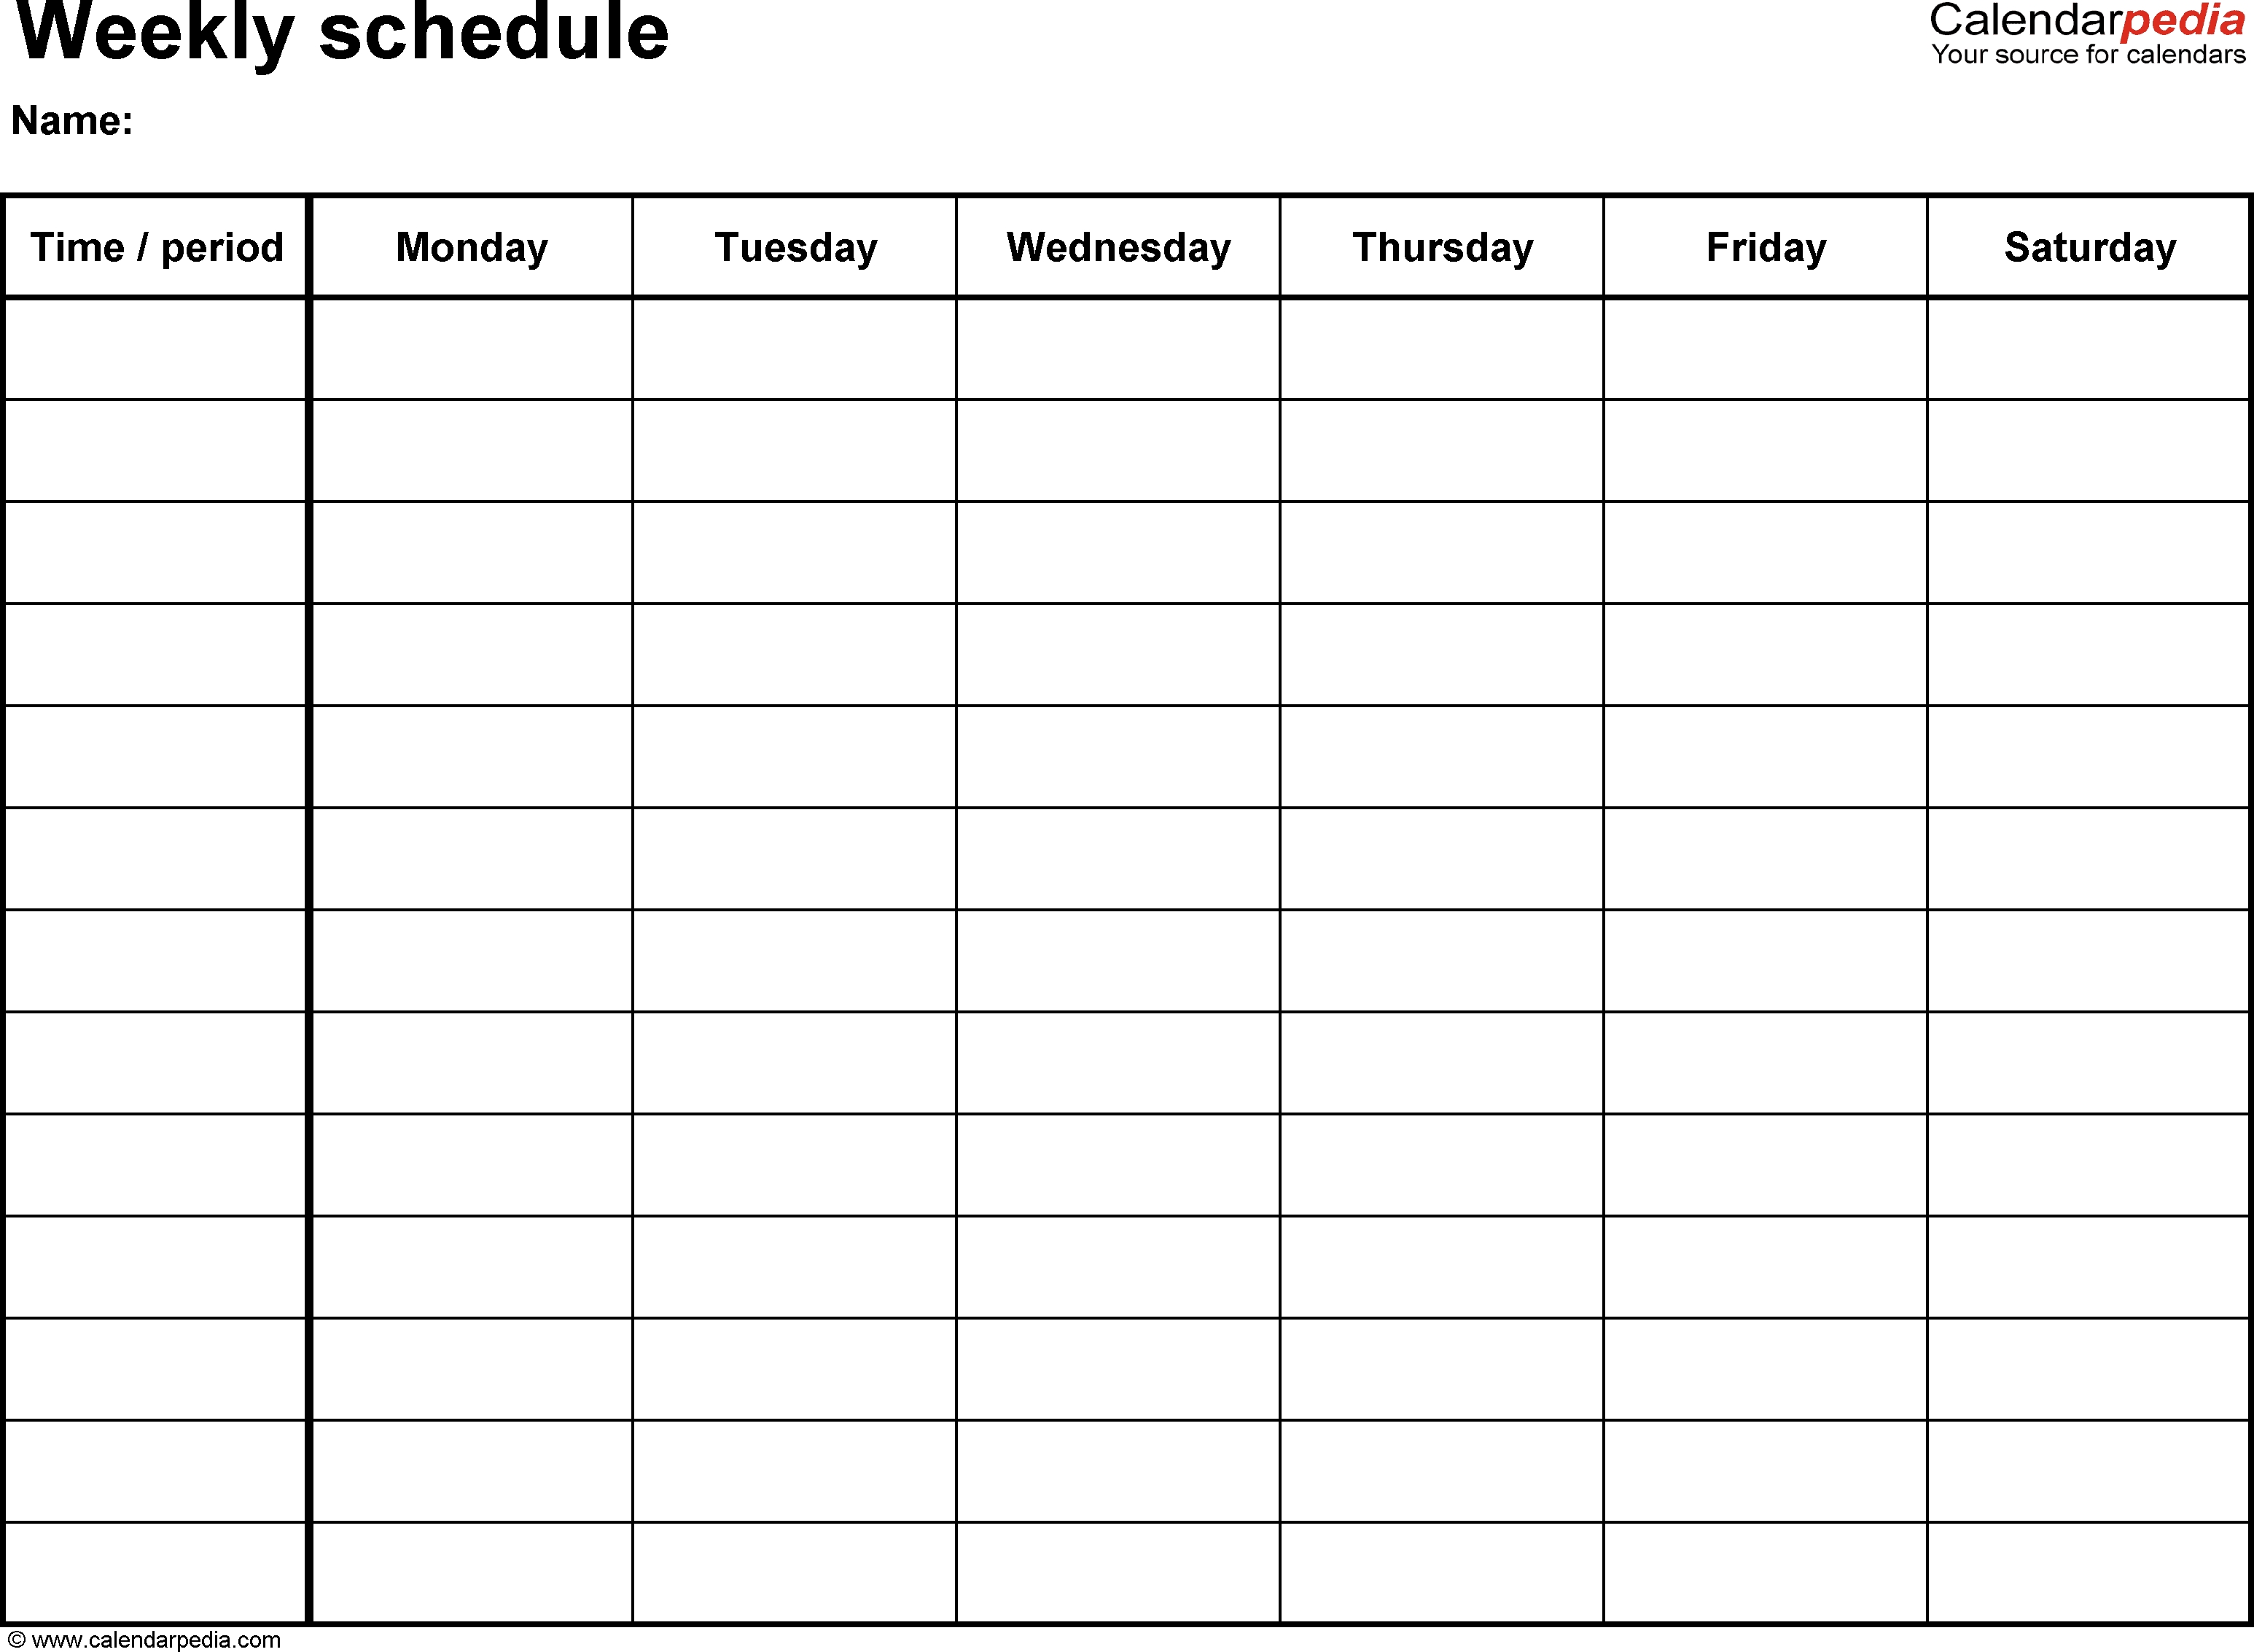 Free Weekly Schedule Templates For Pdf - 18 Templates pertaining to 7 Day Week Schedule Calendar Pdf